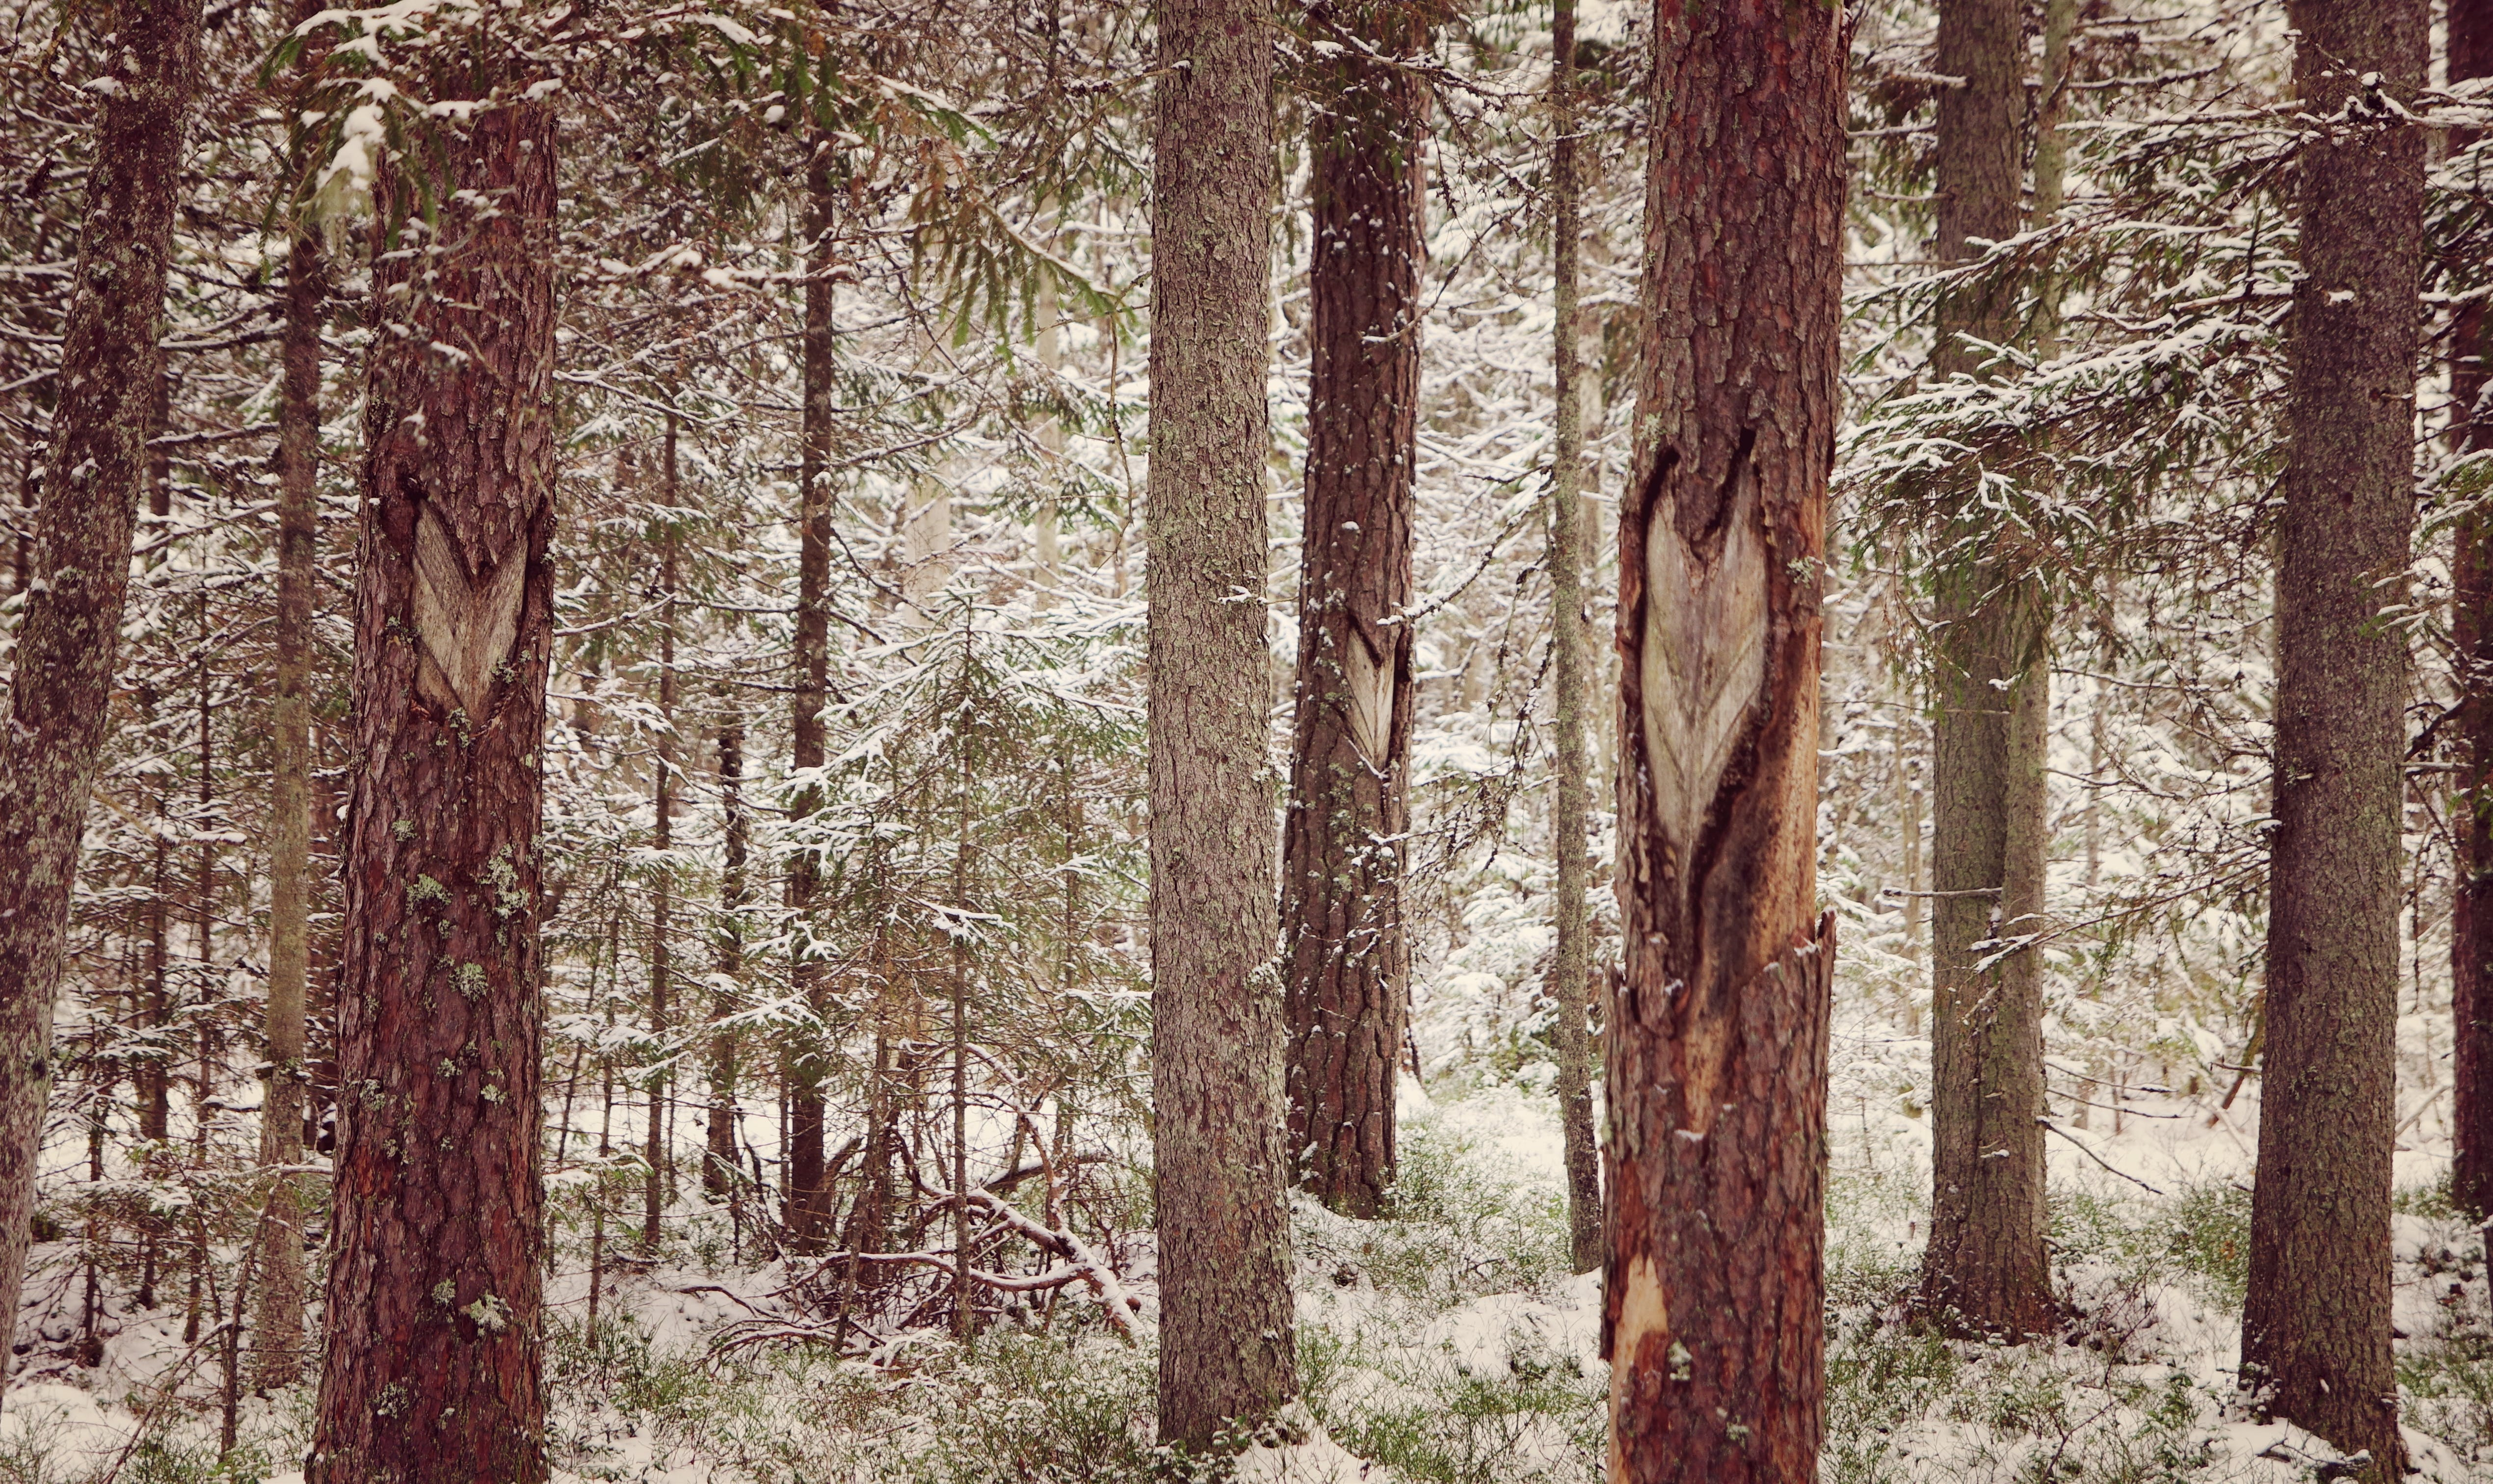 Photography of Tree Trunks During WInter